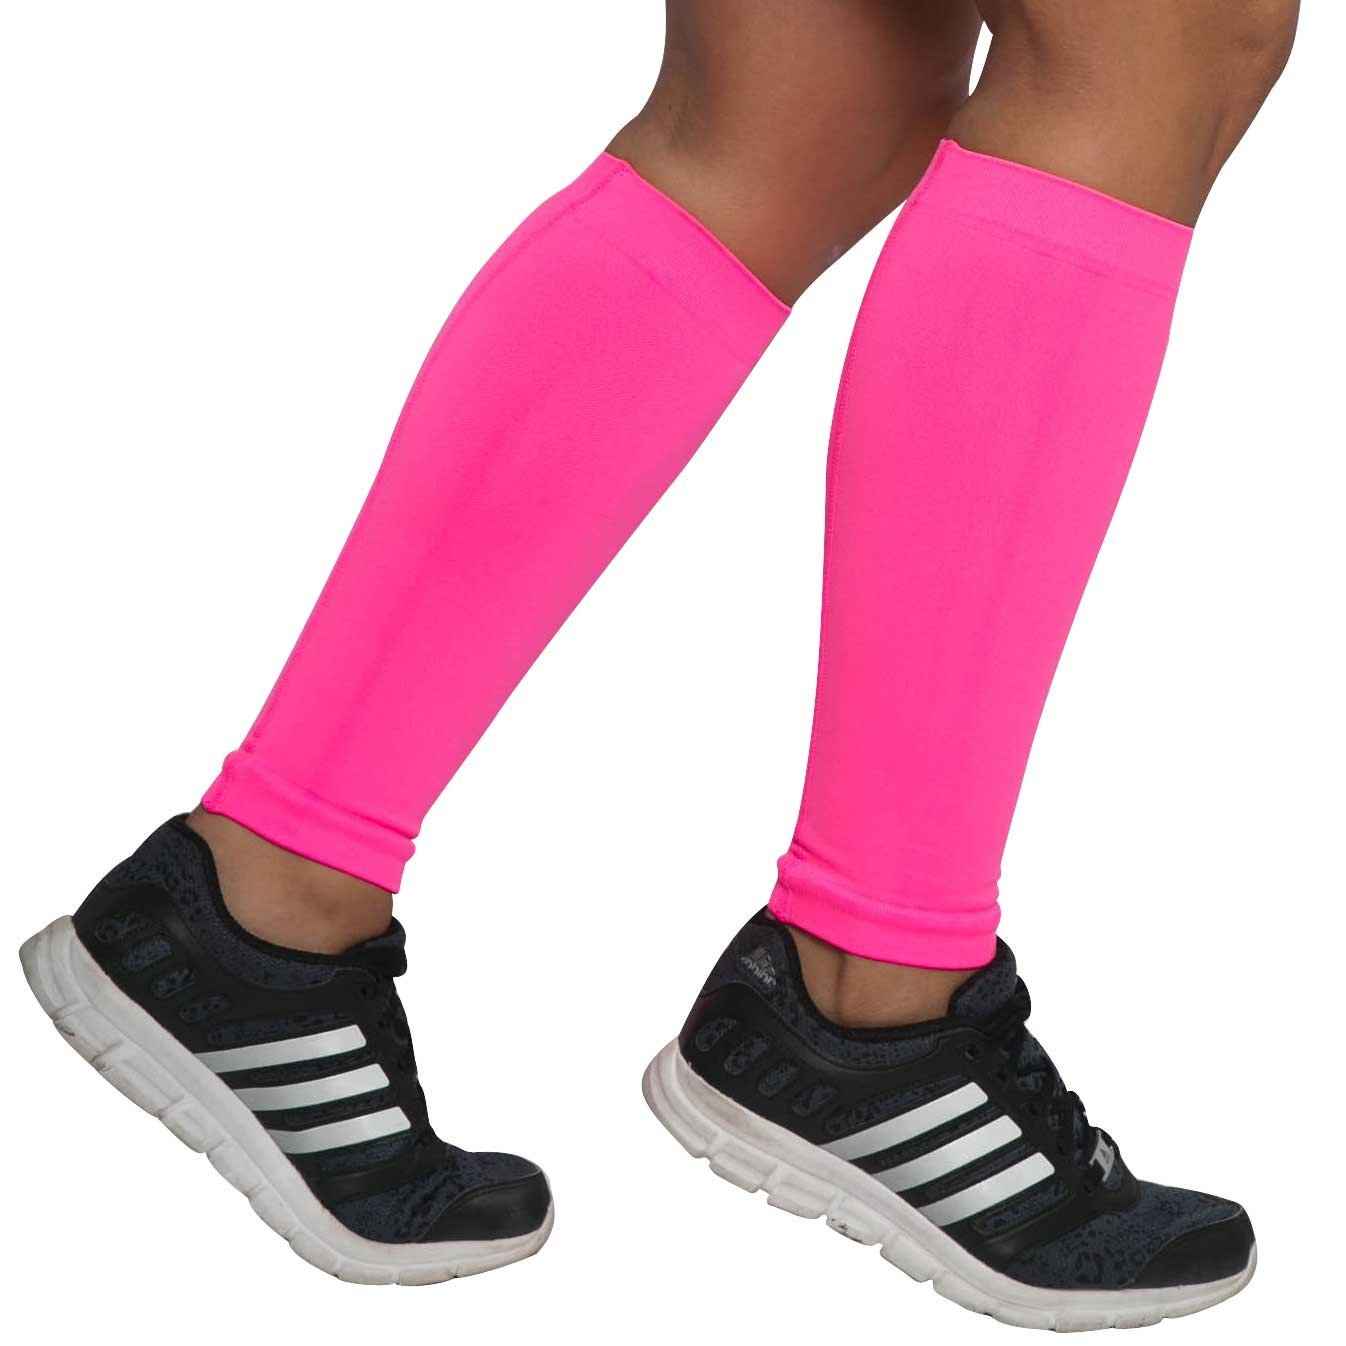 7b63561392 Compression Leg Sleeves – Calf Sleeves to Relieve Shin Splints, Shin Sleeve,  Footless Compression